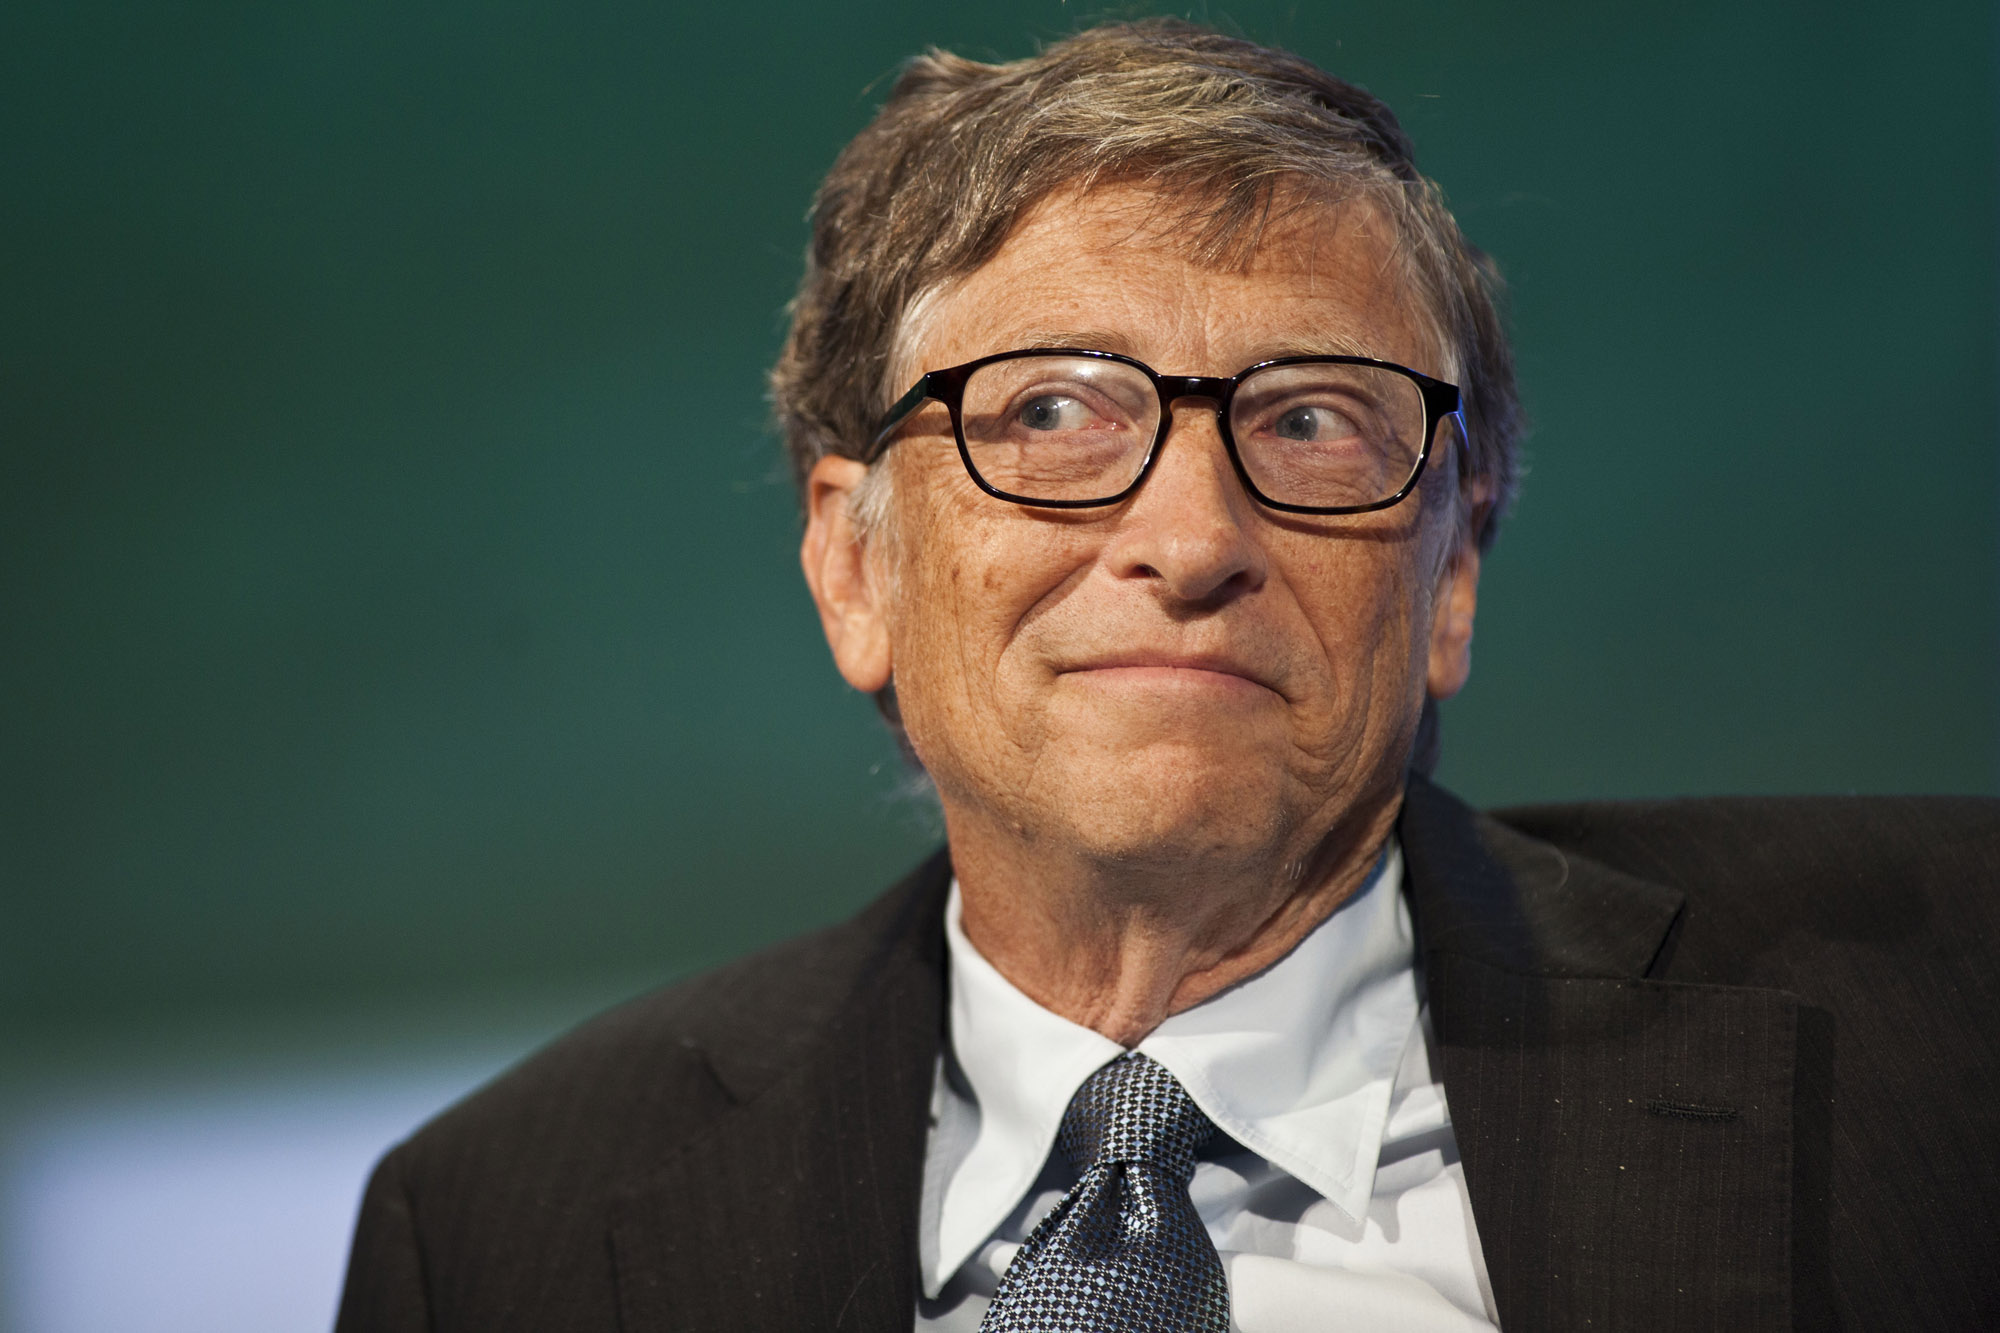 Bill Gates Bill Gates on climate change 39Energy miracle possible